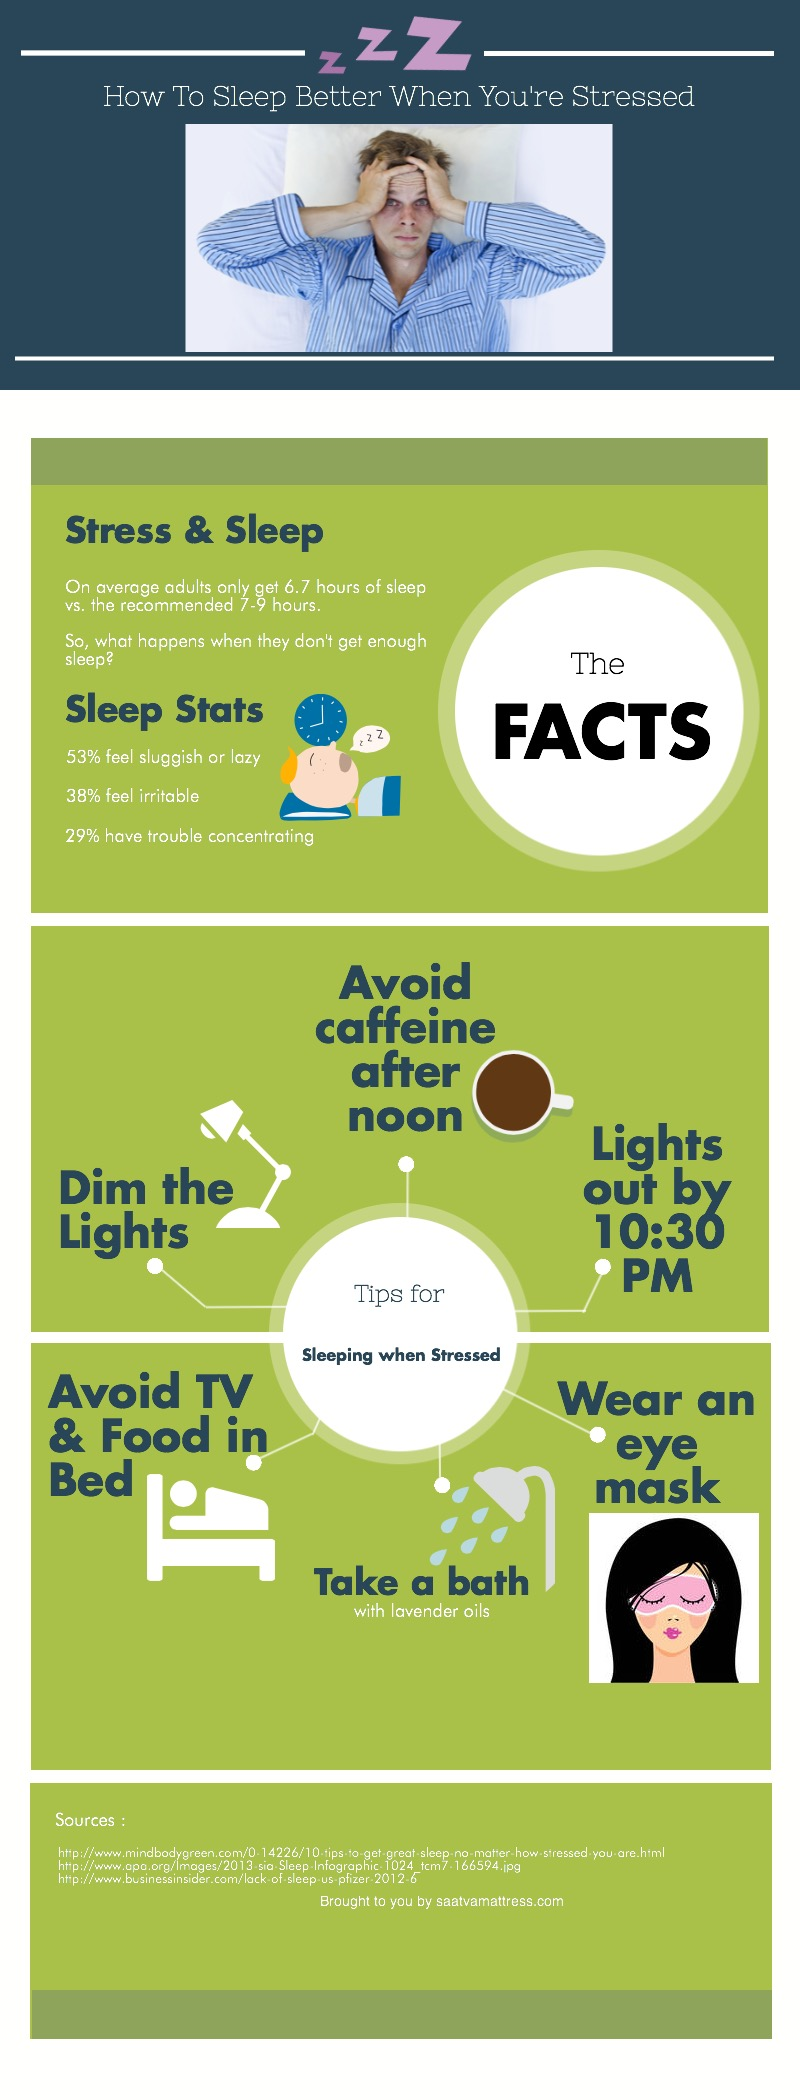 stress and sleep, sleep infographic, get better sleep when stressed